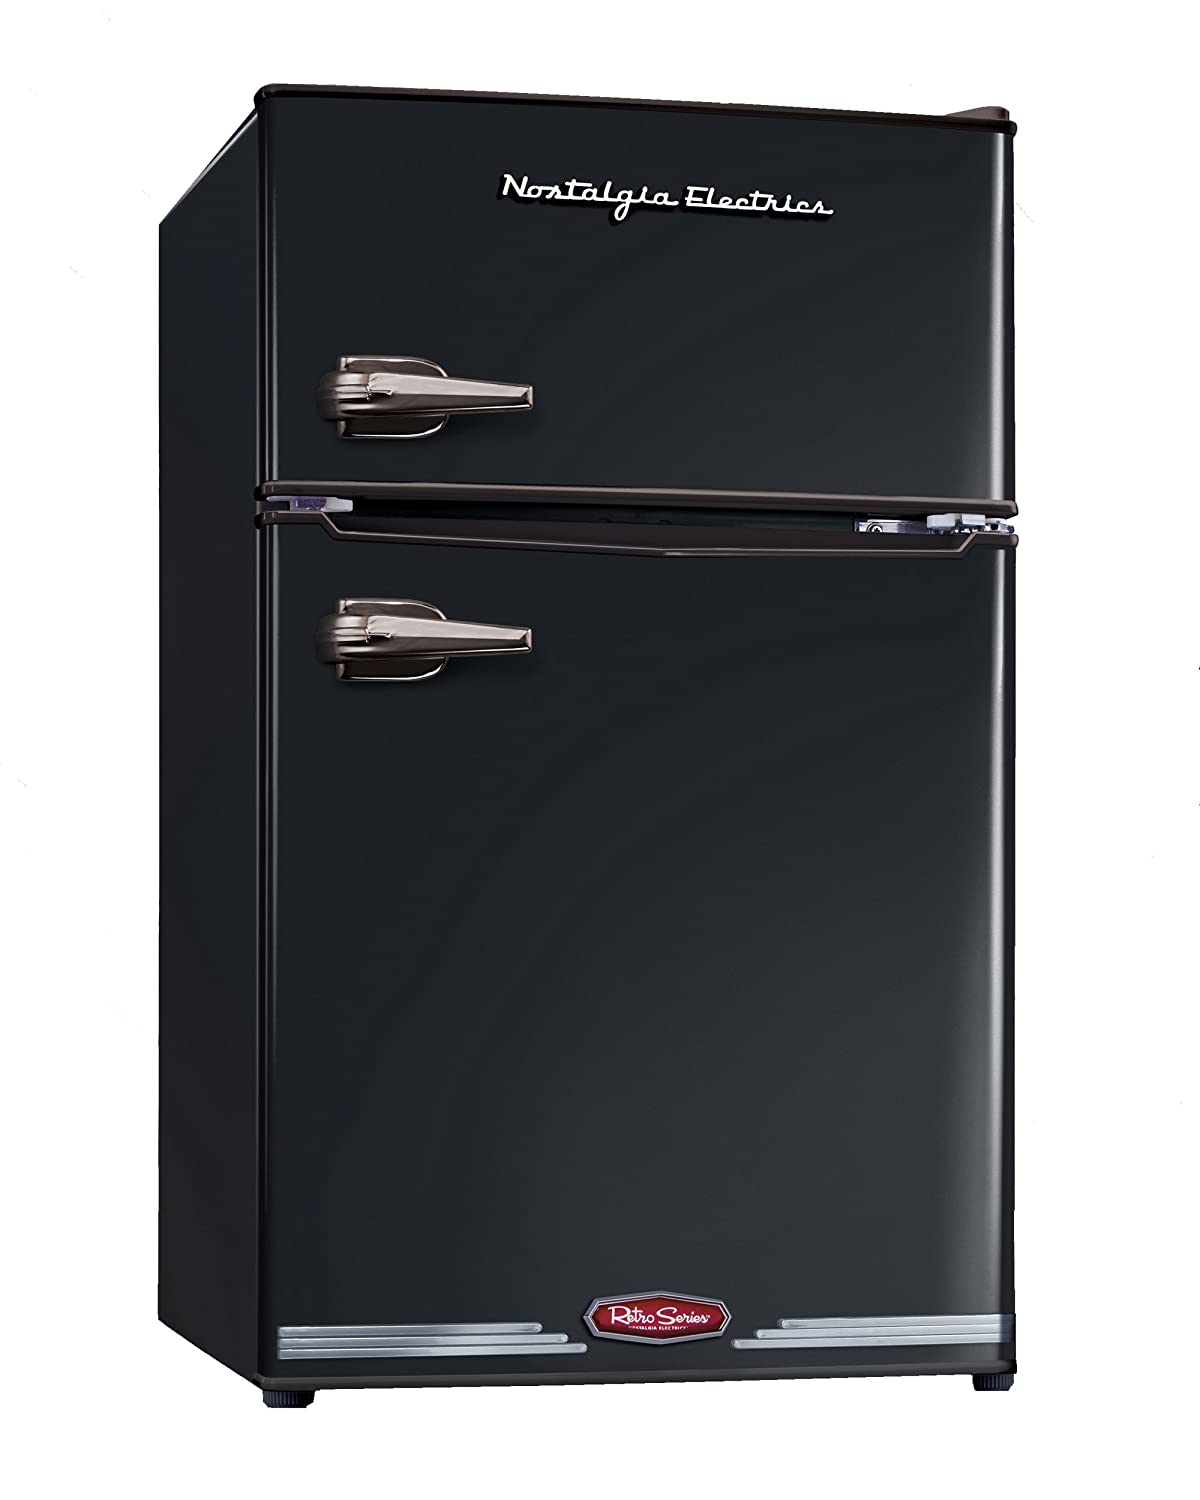 Best Bar Fridge Refrigerator With Ice Maker Detailed Review